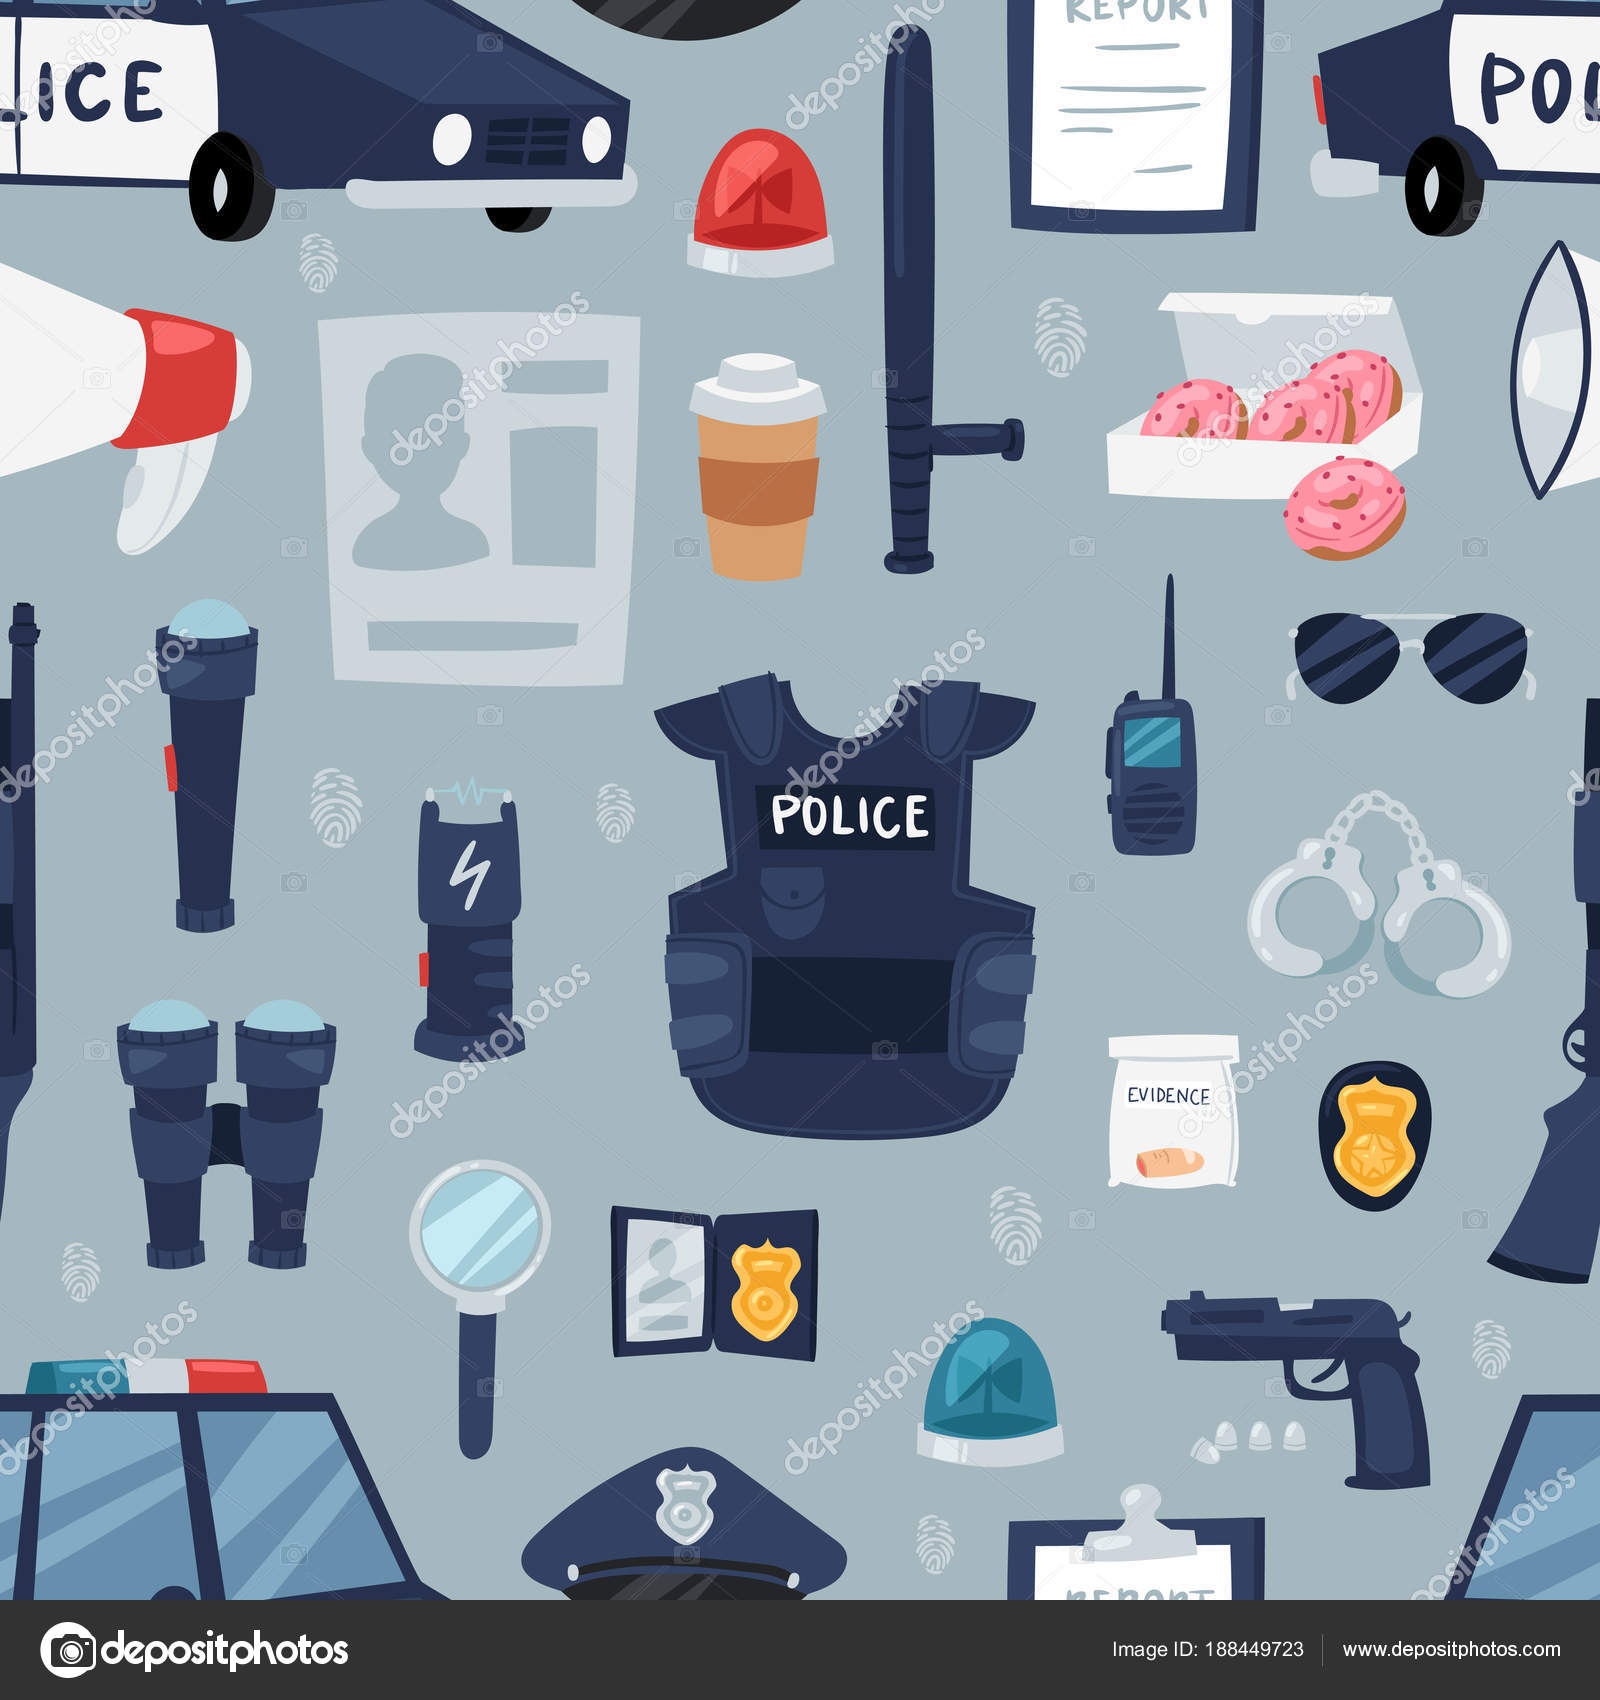 Police Vector Policy Signs Of Policeman And Police Car Illustration